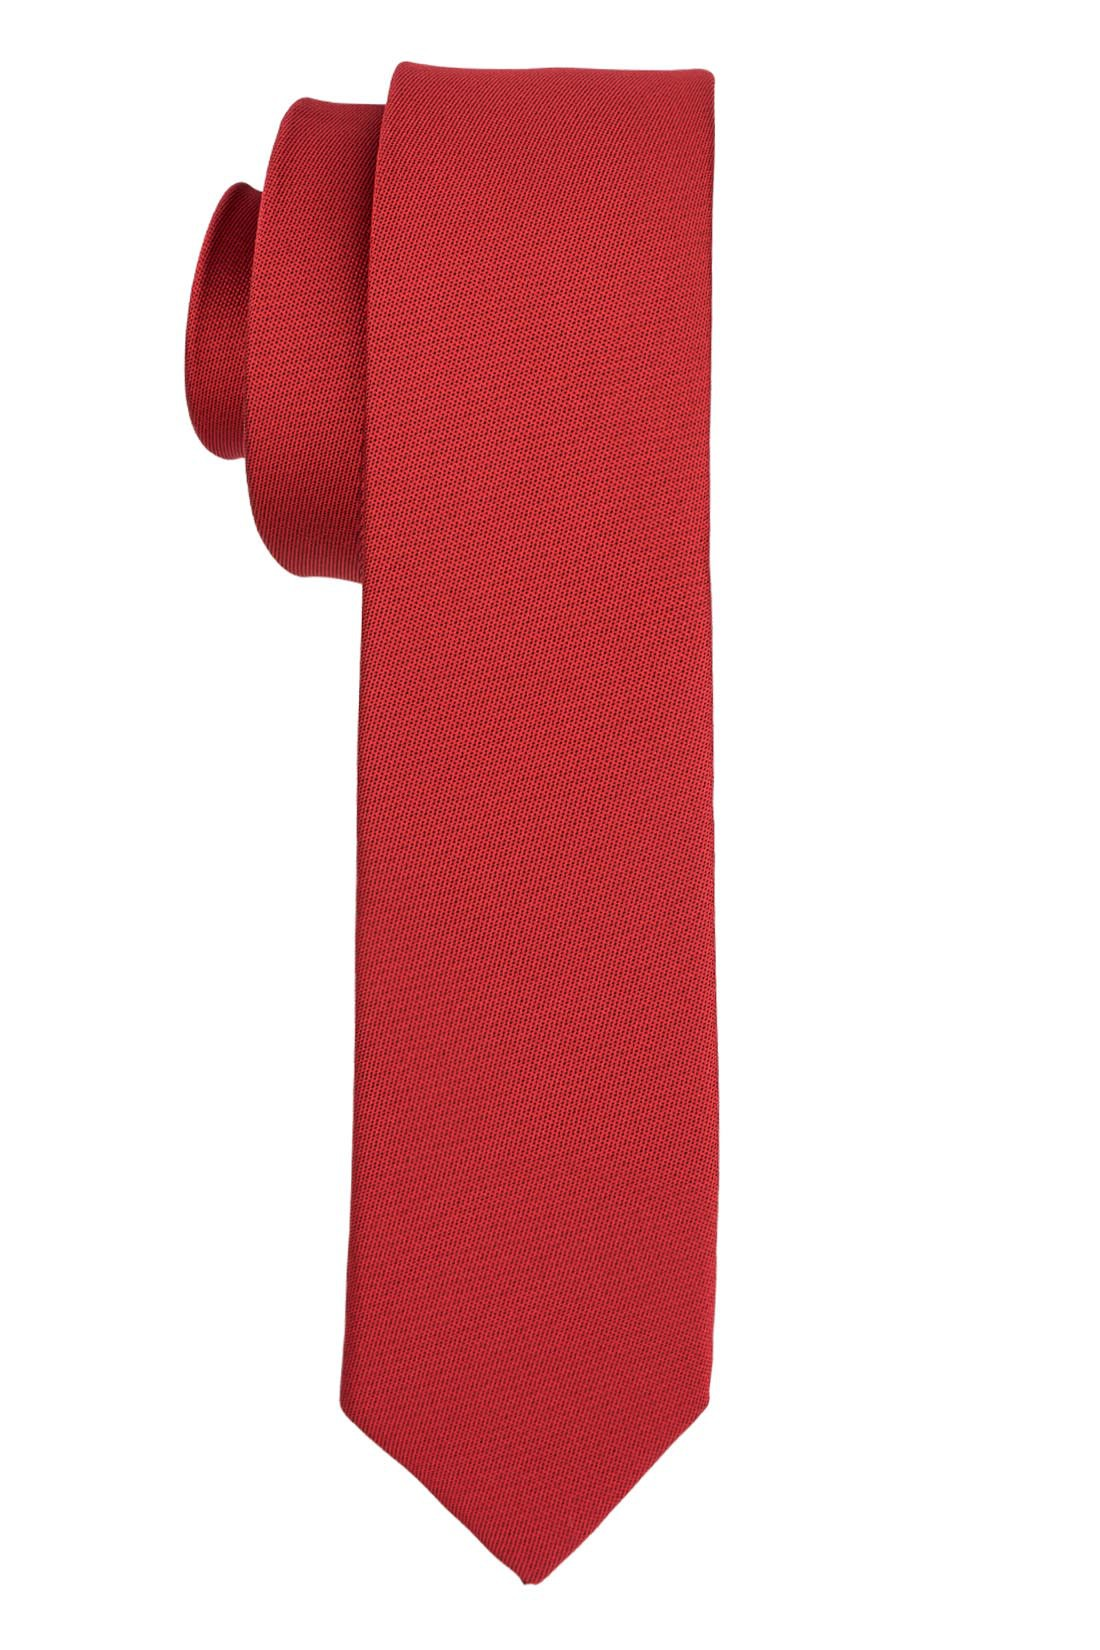 Solid Red Ultra Thin Microfiber Necktie